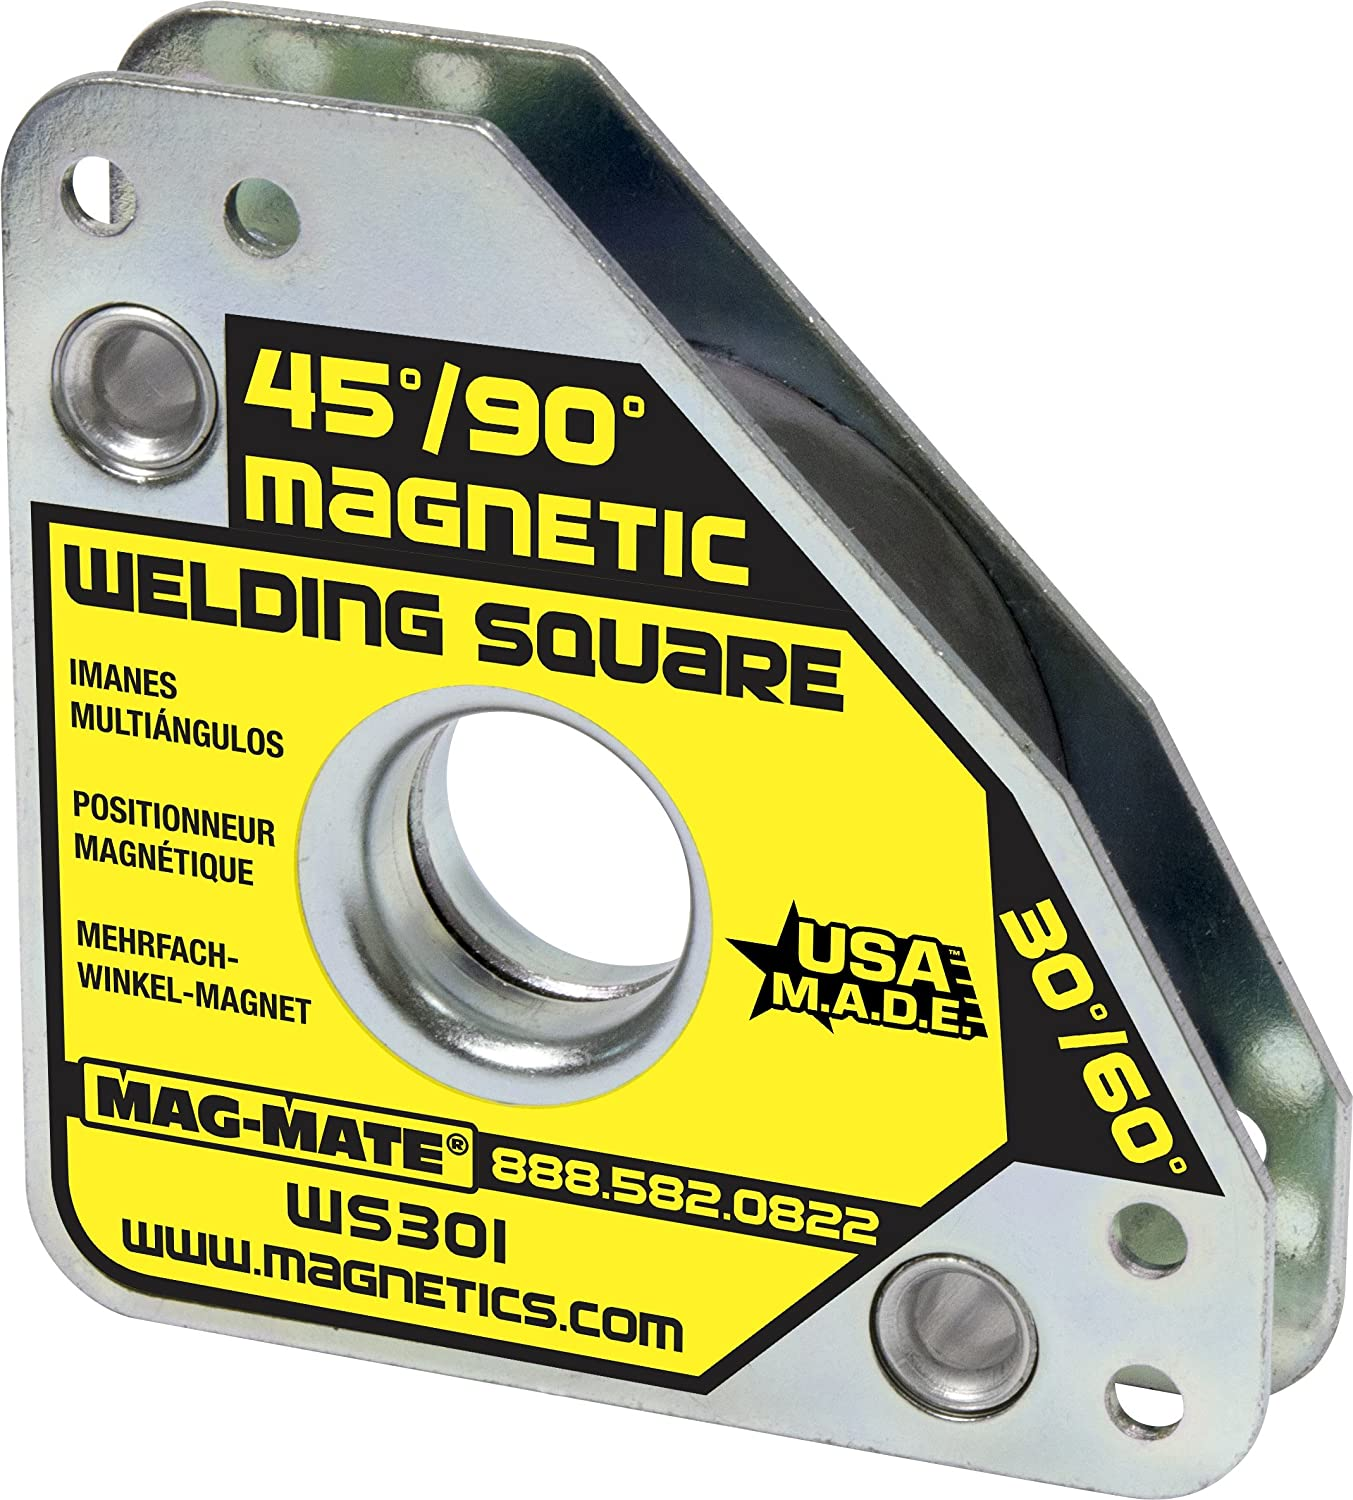 MAG-MATE WS301 Compact Multi Angle Magnetic Welding Square with 55 lb Capacity Industrial Magnetics Inc